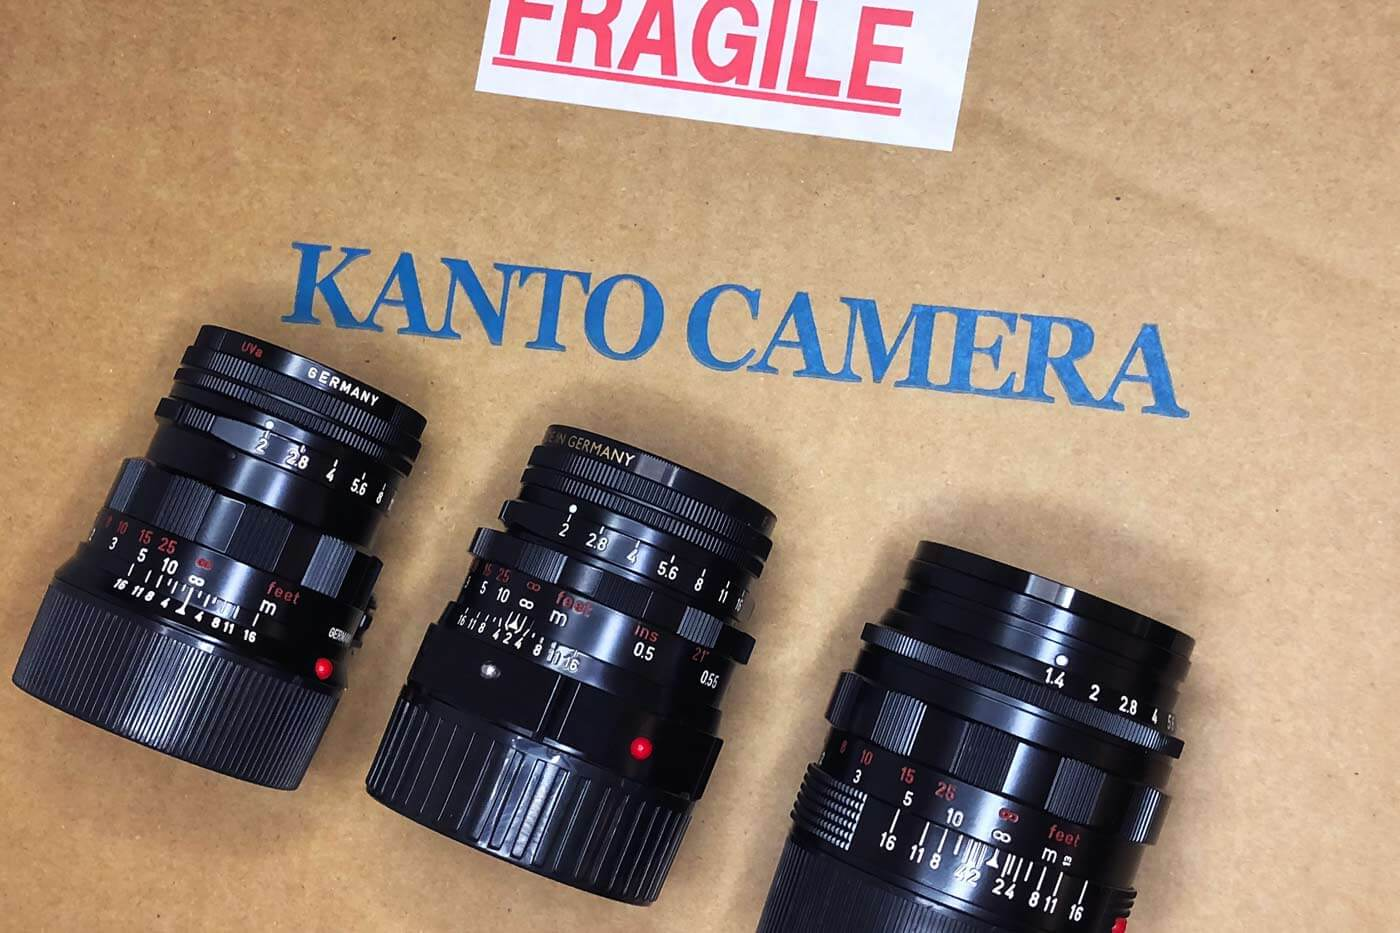 guide-repaint-repainting-leica-camera-lens-lenses-japan-kanto-cameras-black-brass-quality-best-option-experience-9-months-summicron-dr-rigid-dual-range-50mm-summilux-v2-red-scale-front